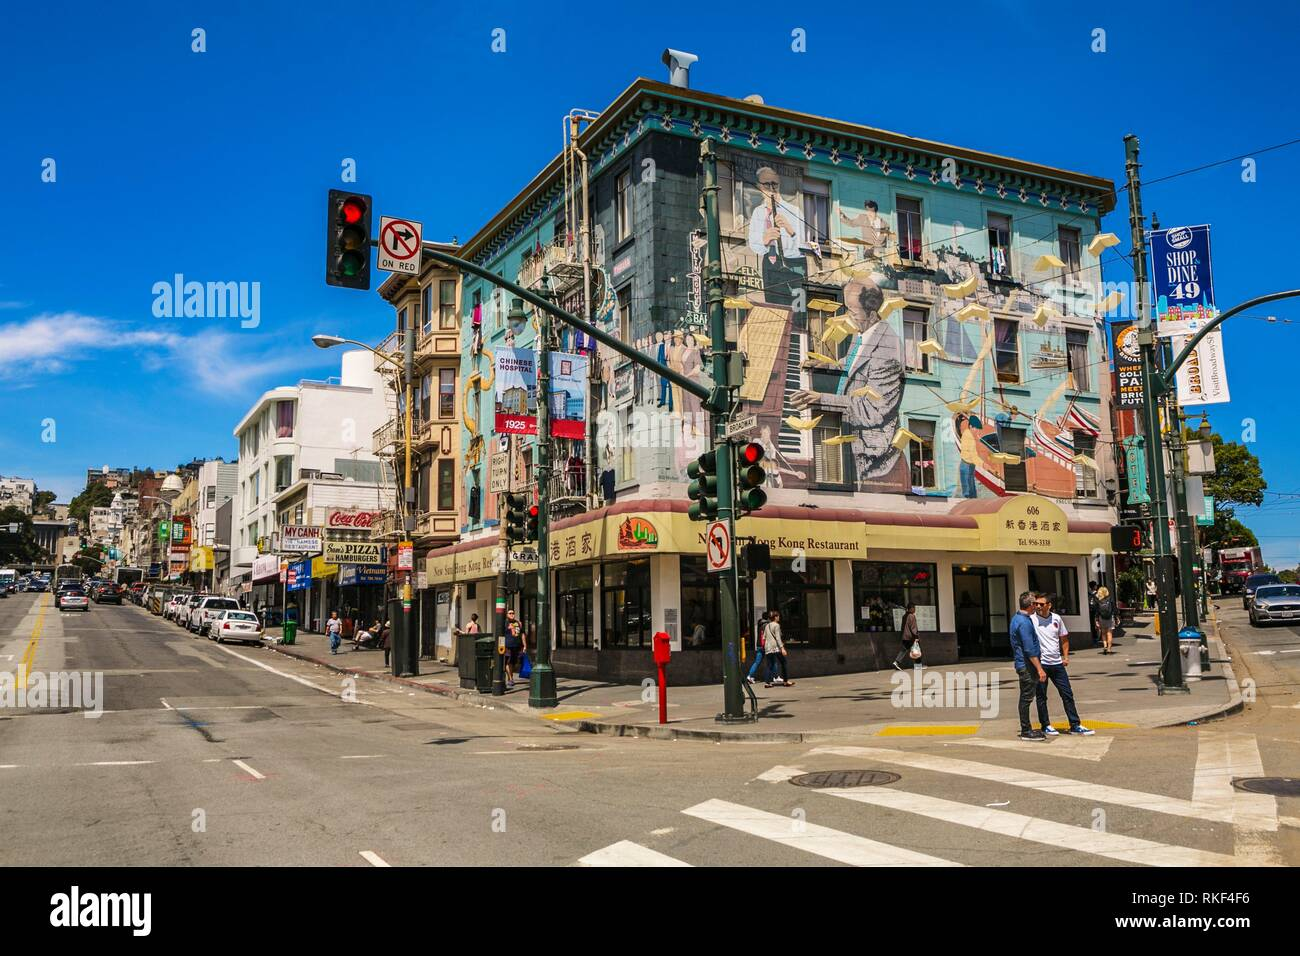 Intersection between Broadway and Columbus avenue. Little Italy. North Beach neighbourhood. San Francisco. California, USA - Stock Image